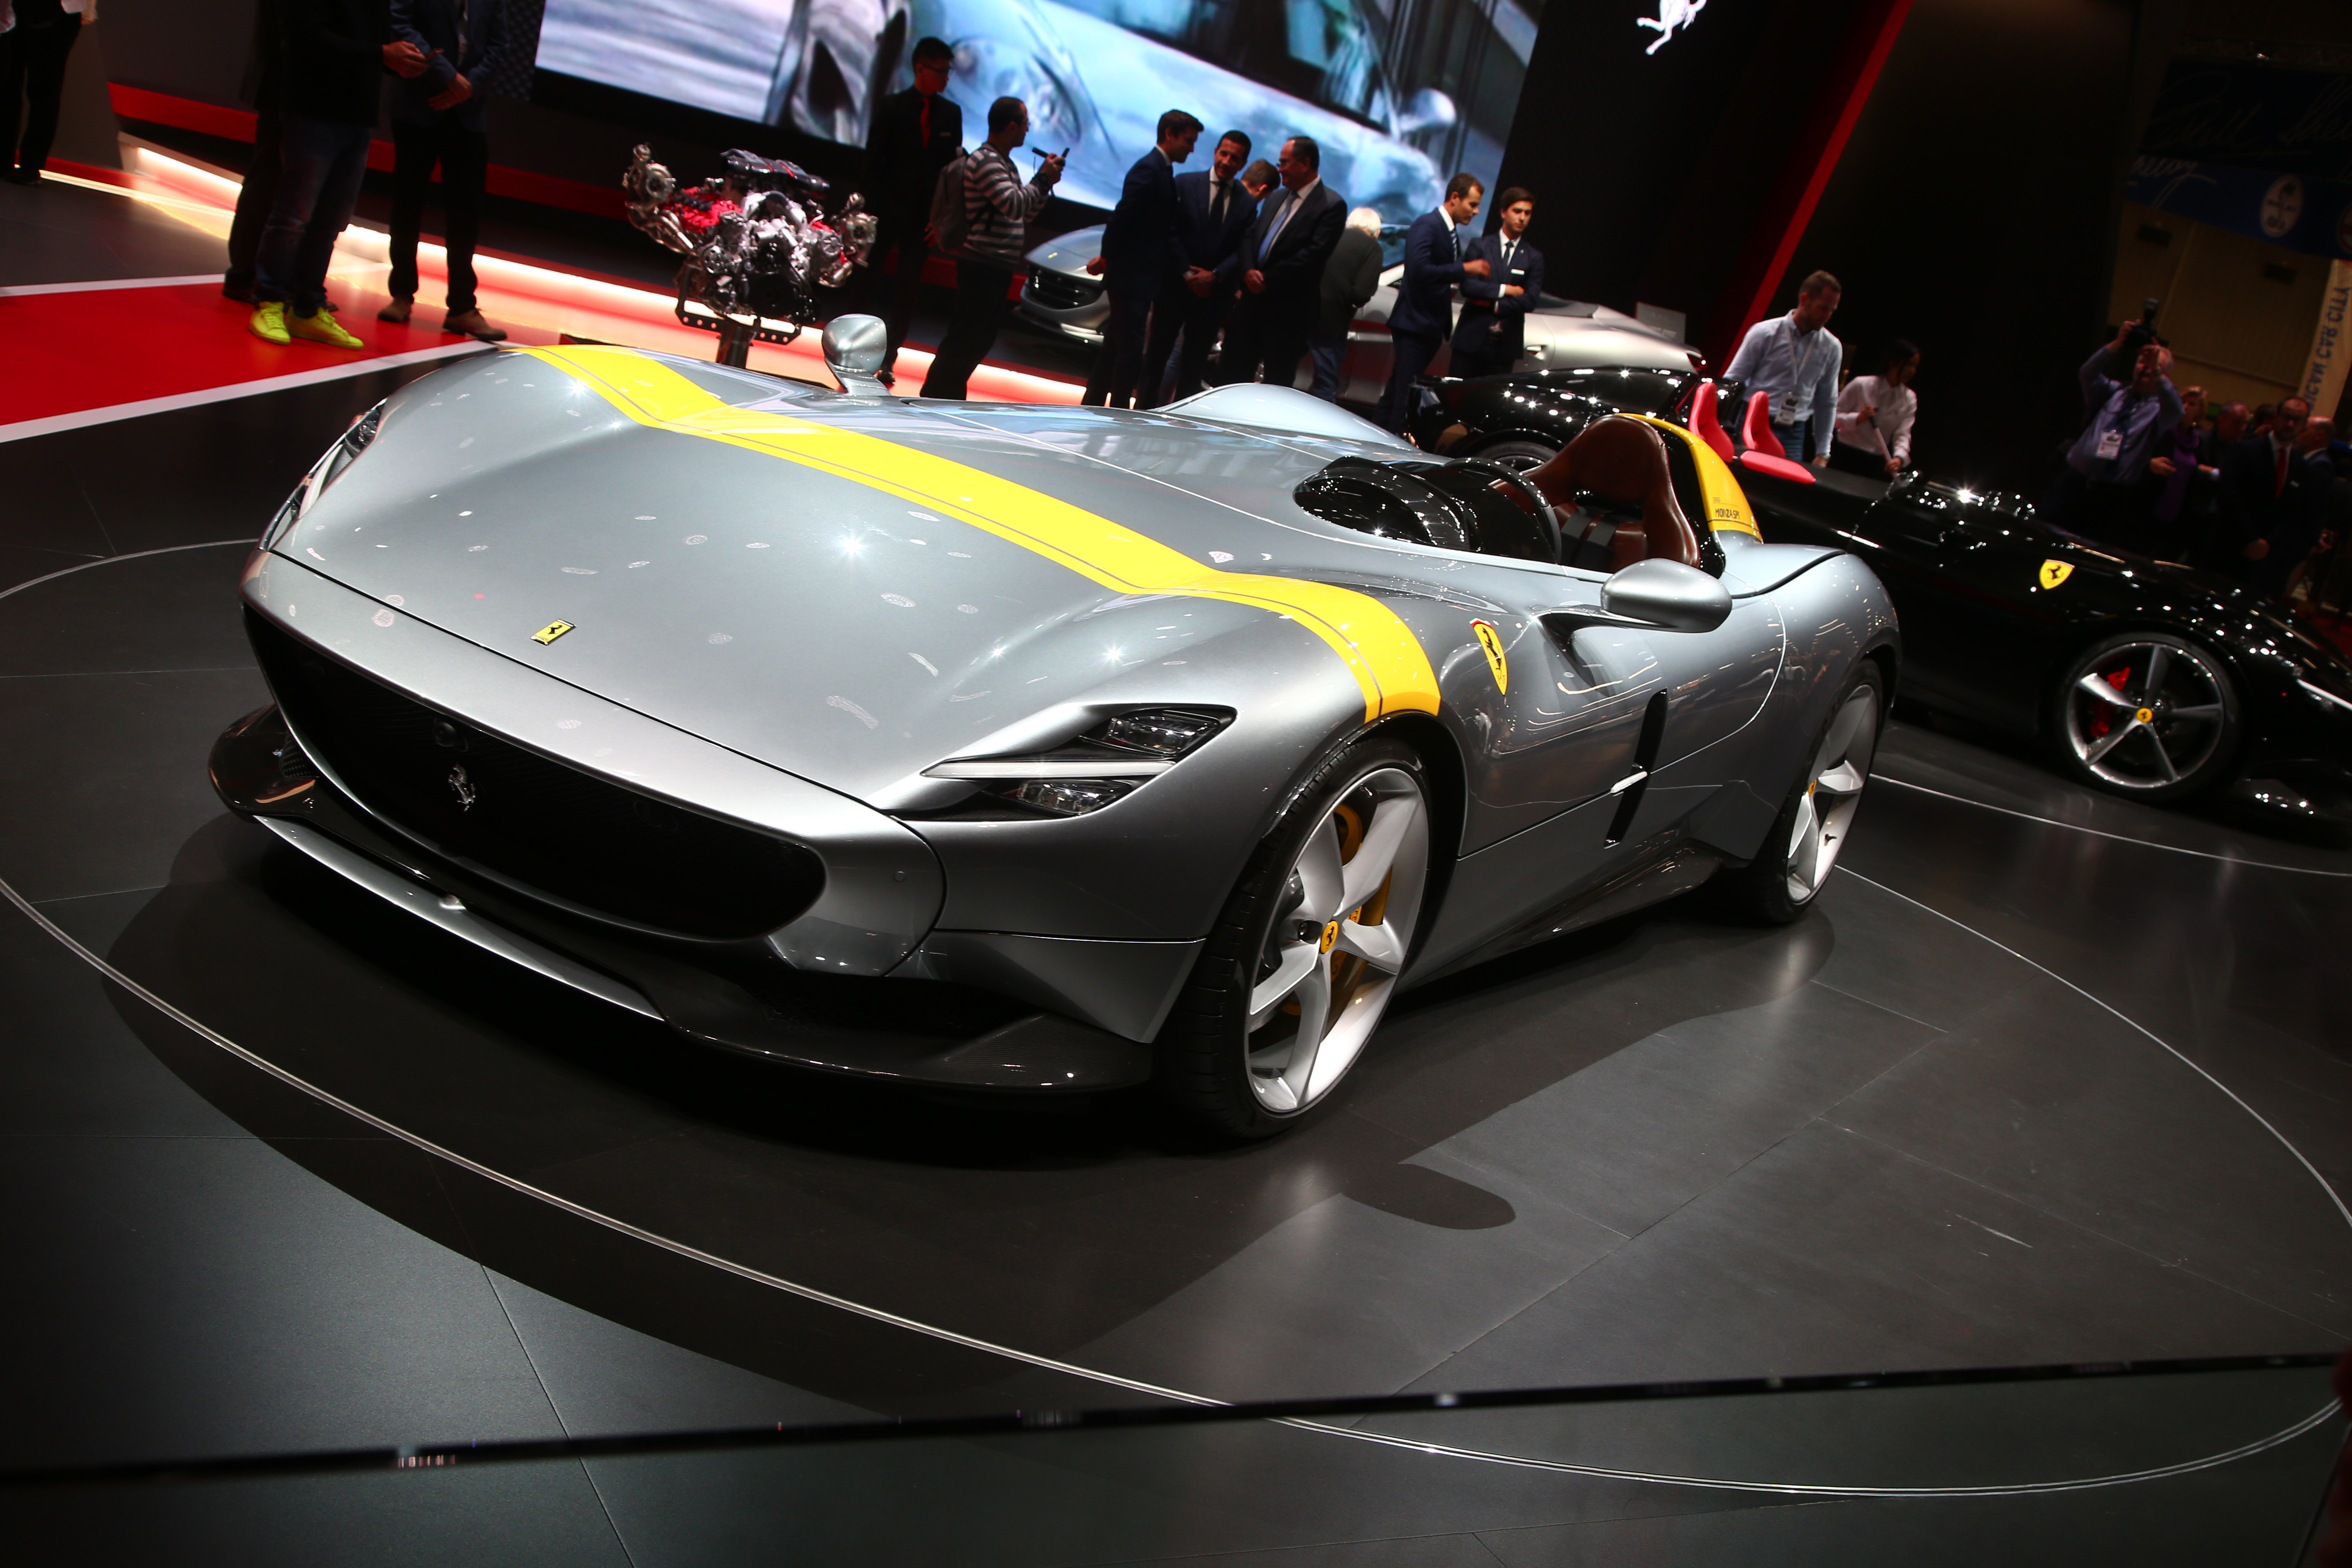 Salon de Paris 2018 Ferrari Monza SP1